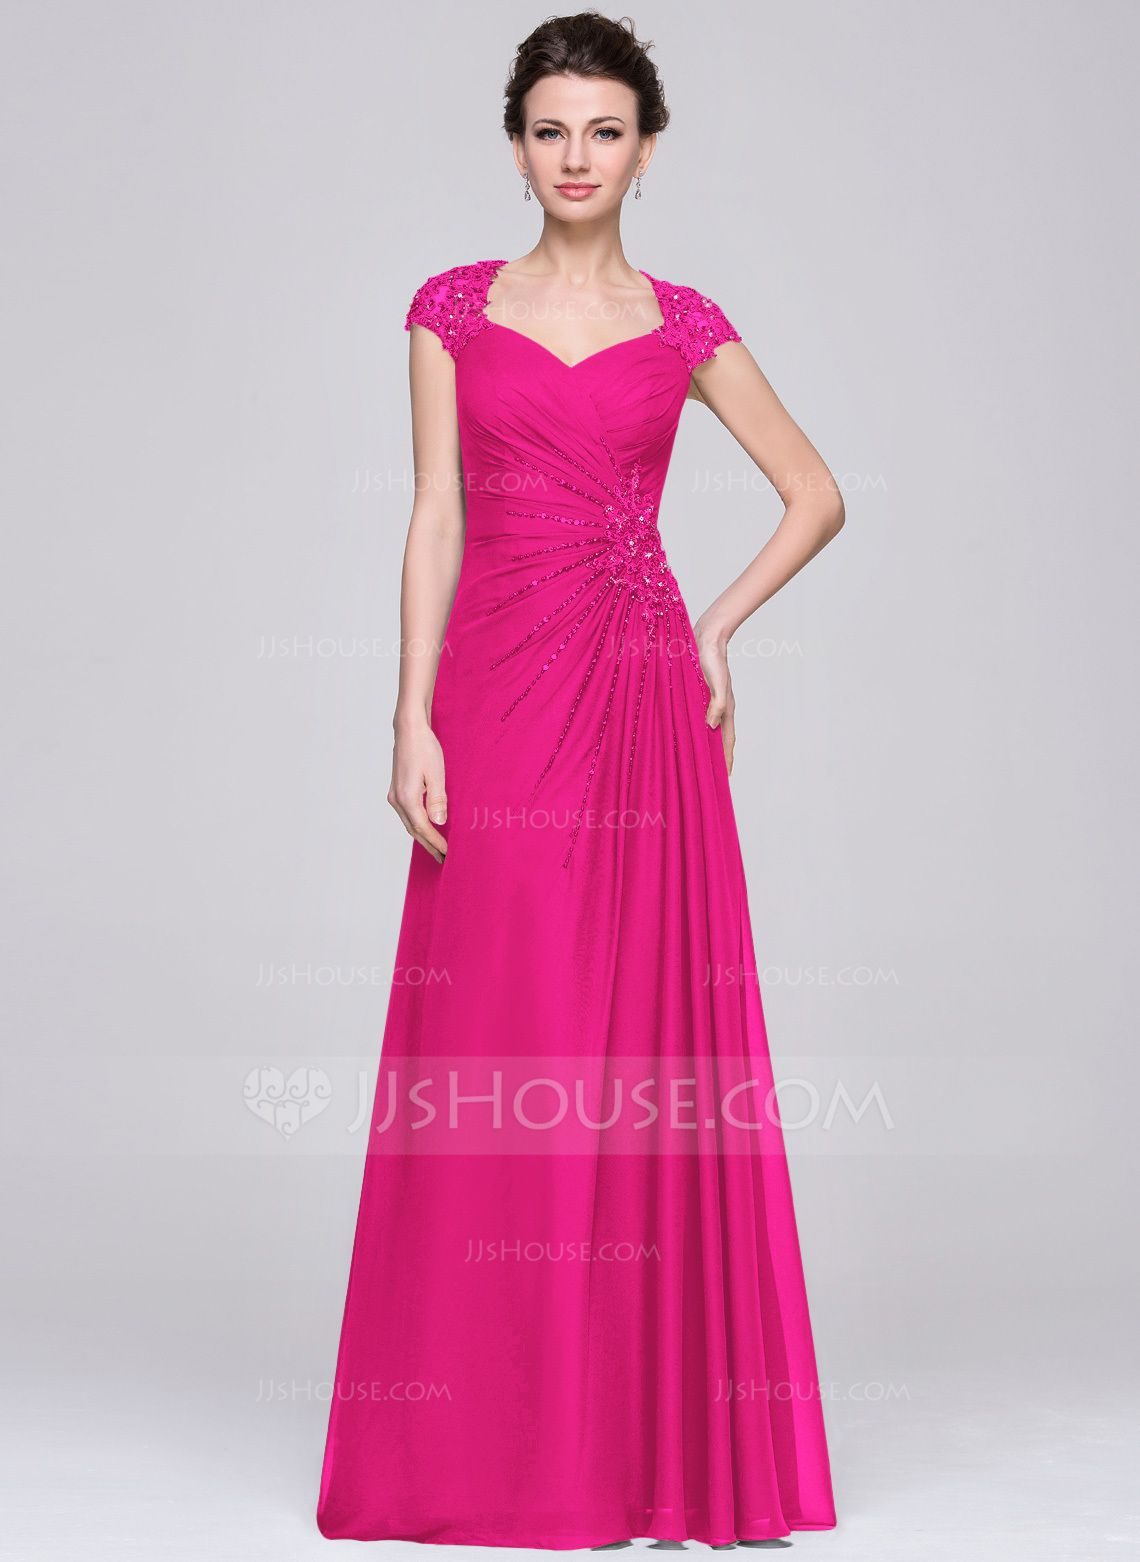 Dress for wedding party in winter  JJsHouse as the global leading online retailer provides a large